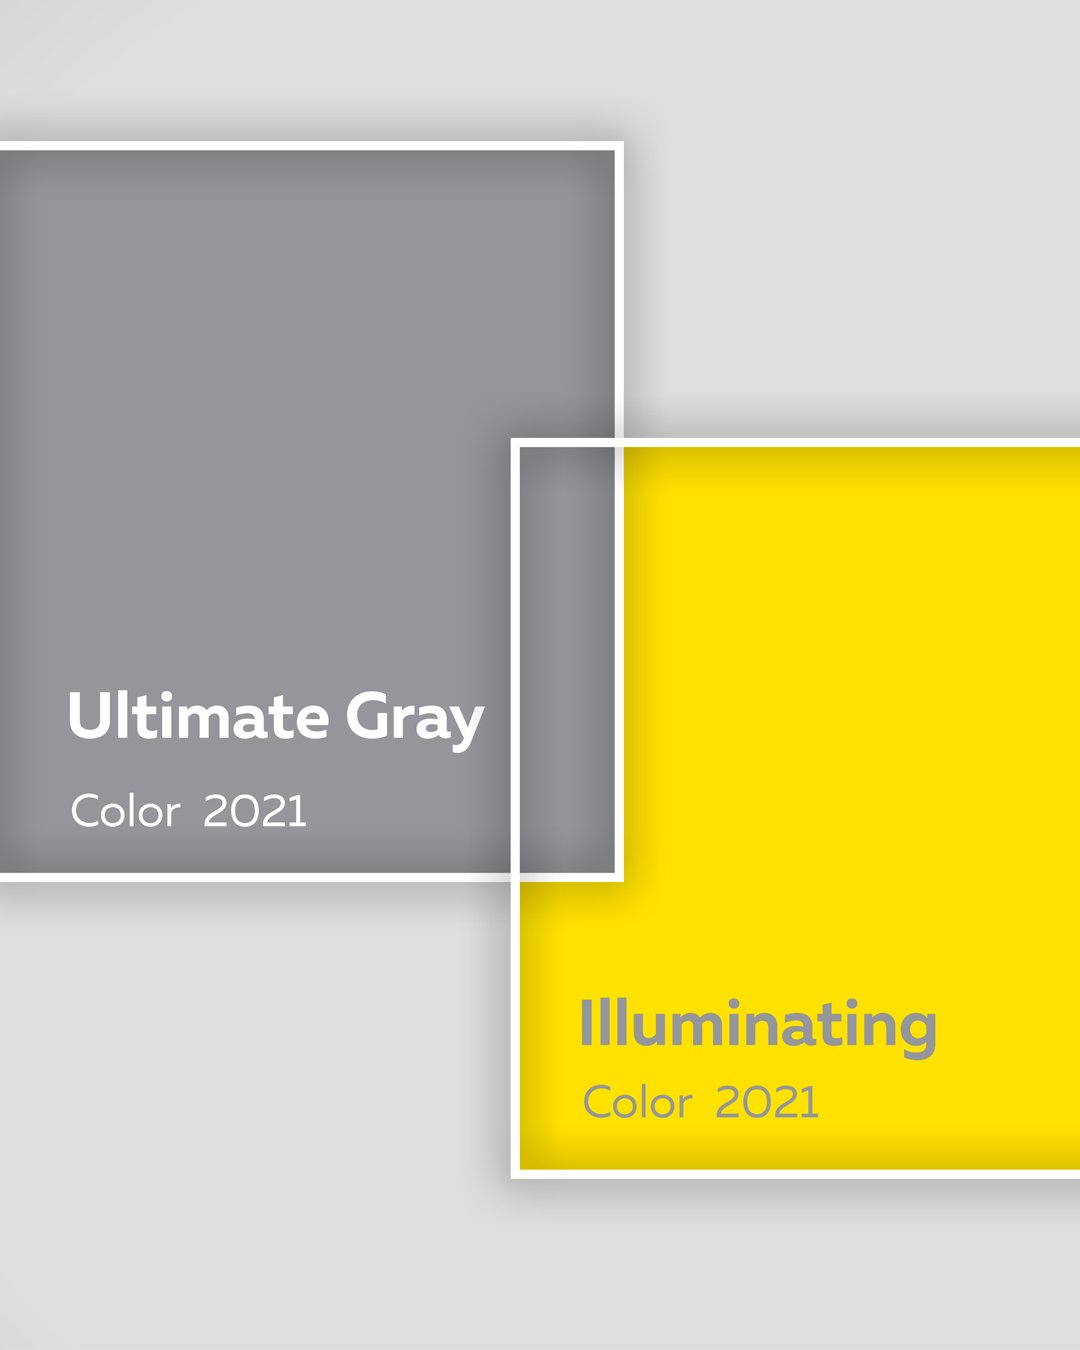 pantone color 2021 ultimate gray illuminating